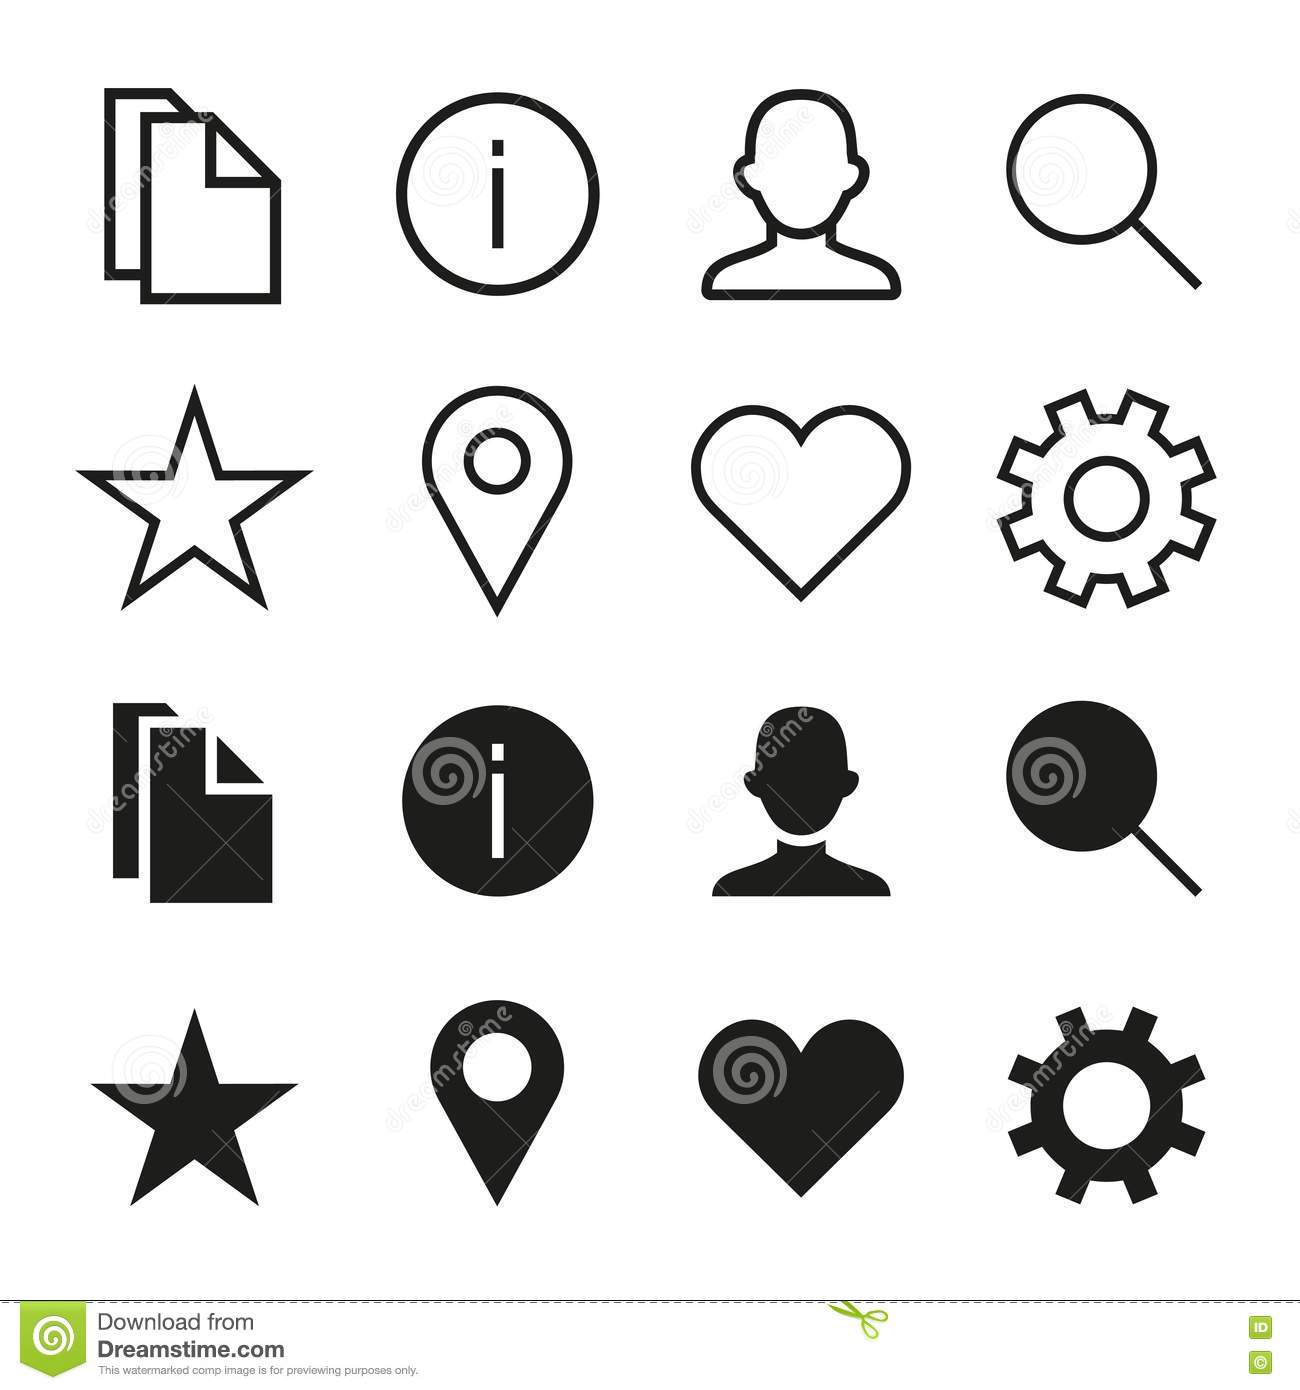 Royalty Free Stock Photography Ios Icons Set Vector Style Select Unselect Image34667197 together with 647583463 as well Micromax Launched Canvas Doodle 4 With Android L And 6 Display likewise Id508504148 in addition Usilitel Na Tda7261. on iphone 4 max ios